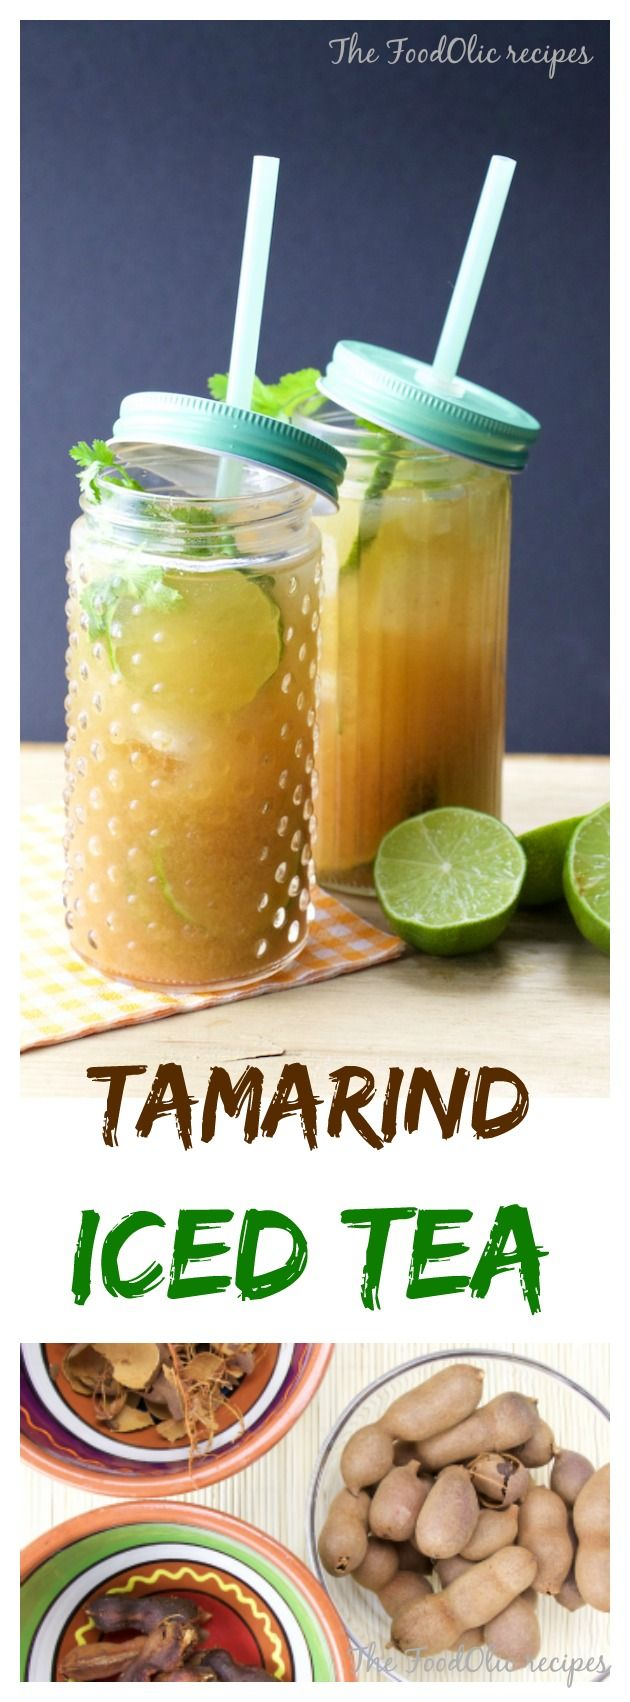 Tamarind Iced Tea is the way to quench your thirst this summer. A refreshing, filled with health benefits drink for your next BBQ. #tamarind #icetea #drink